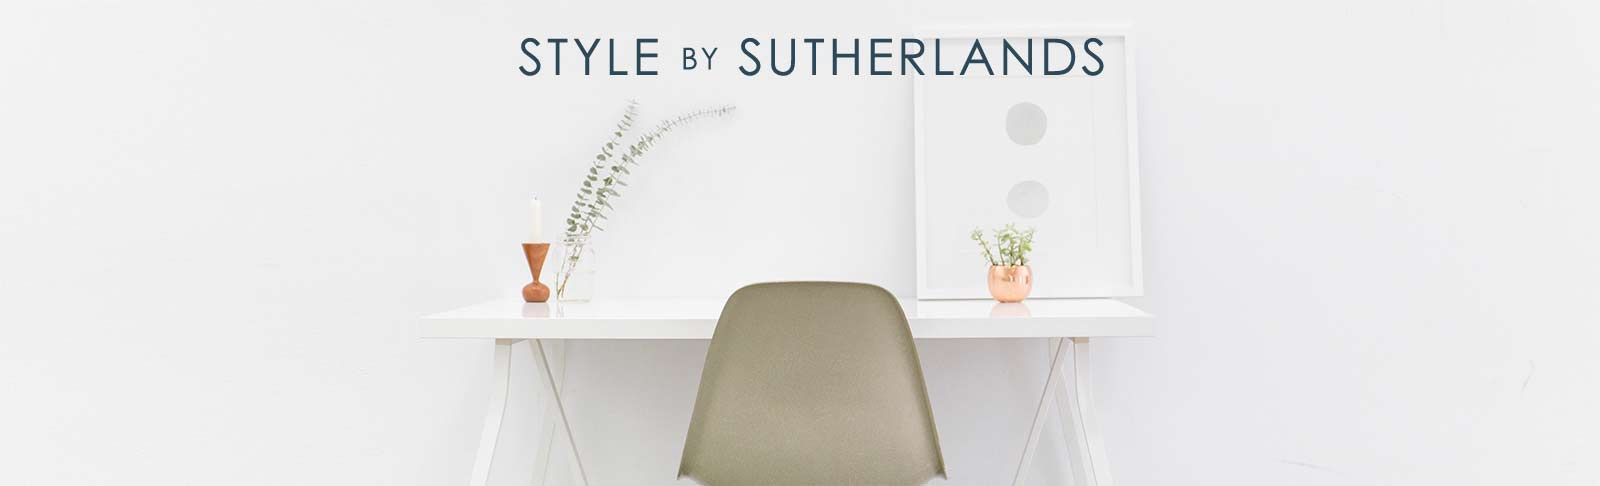 Style By Sutherlands Blog